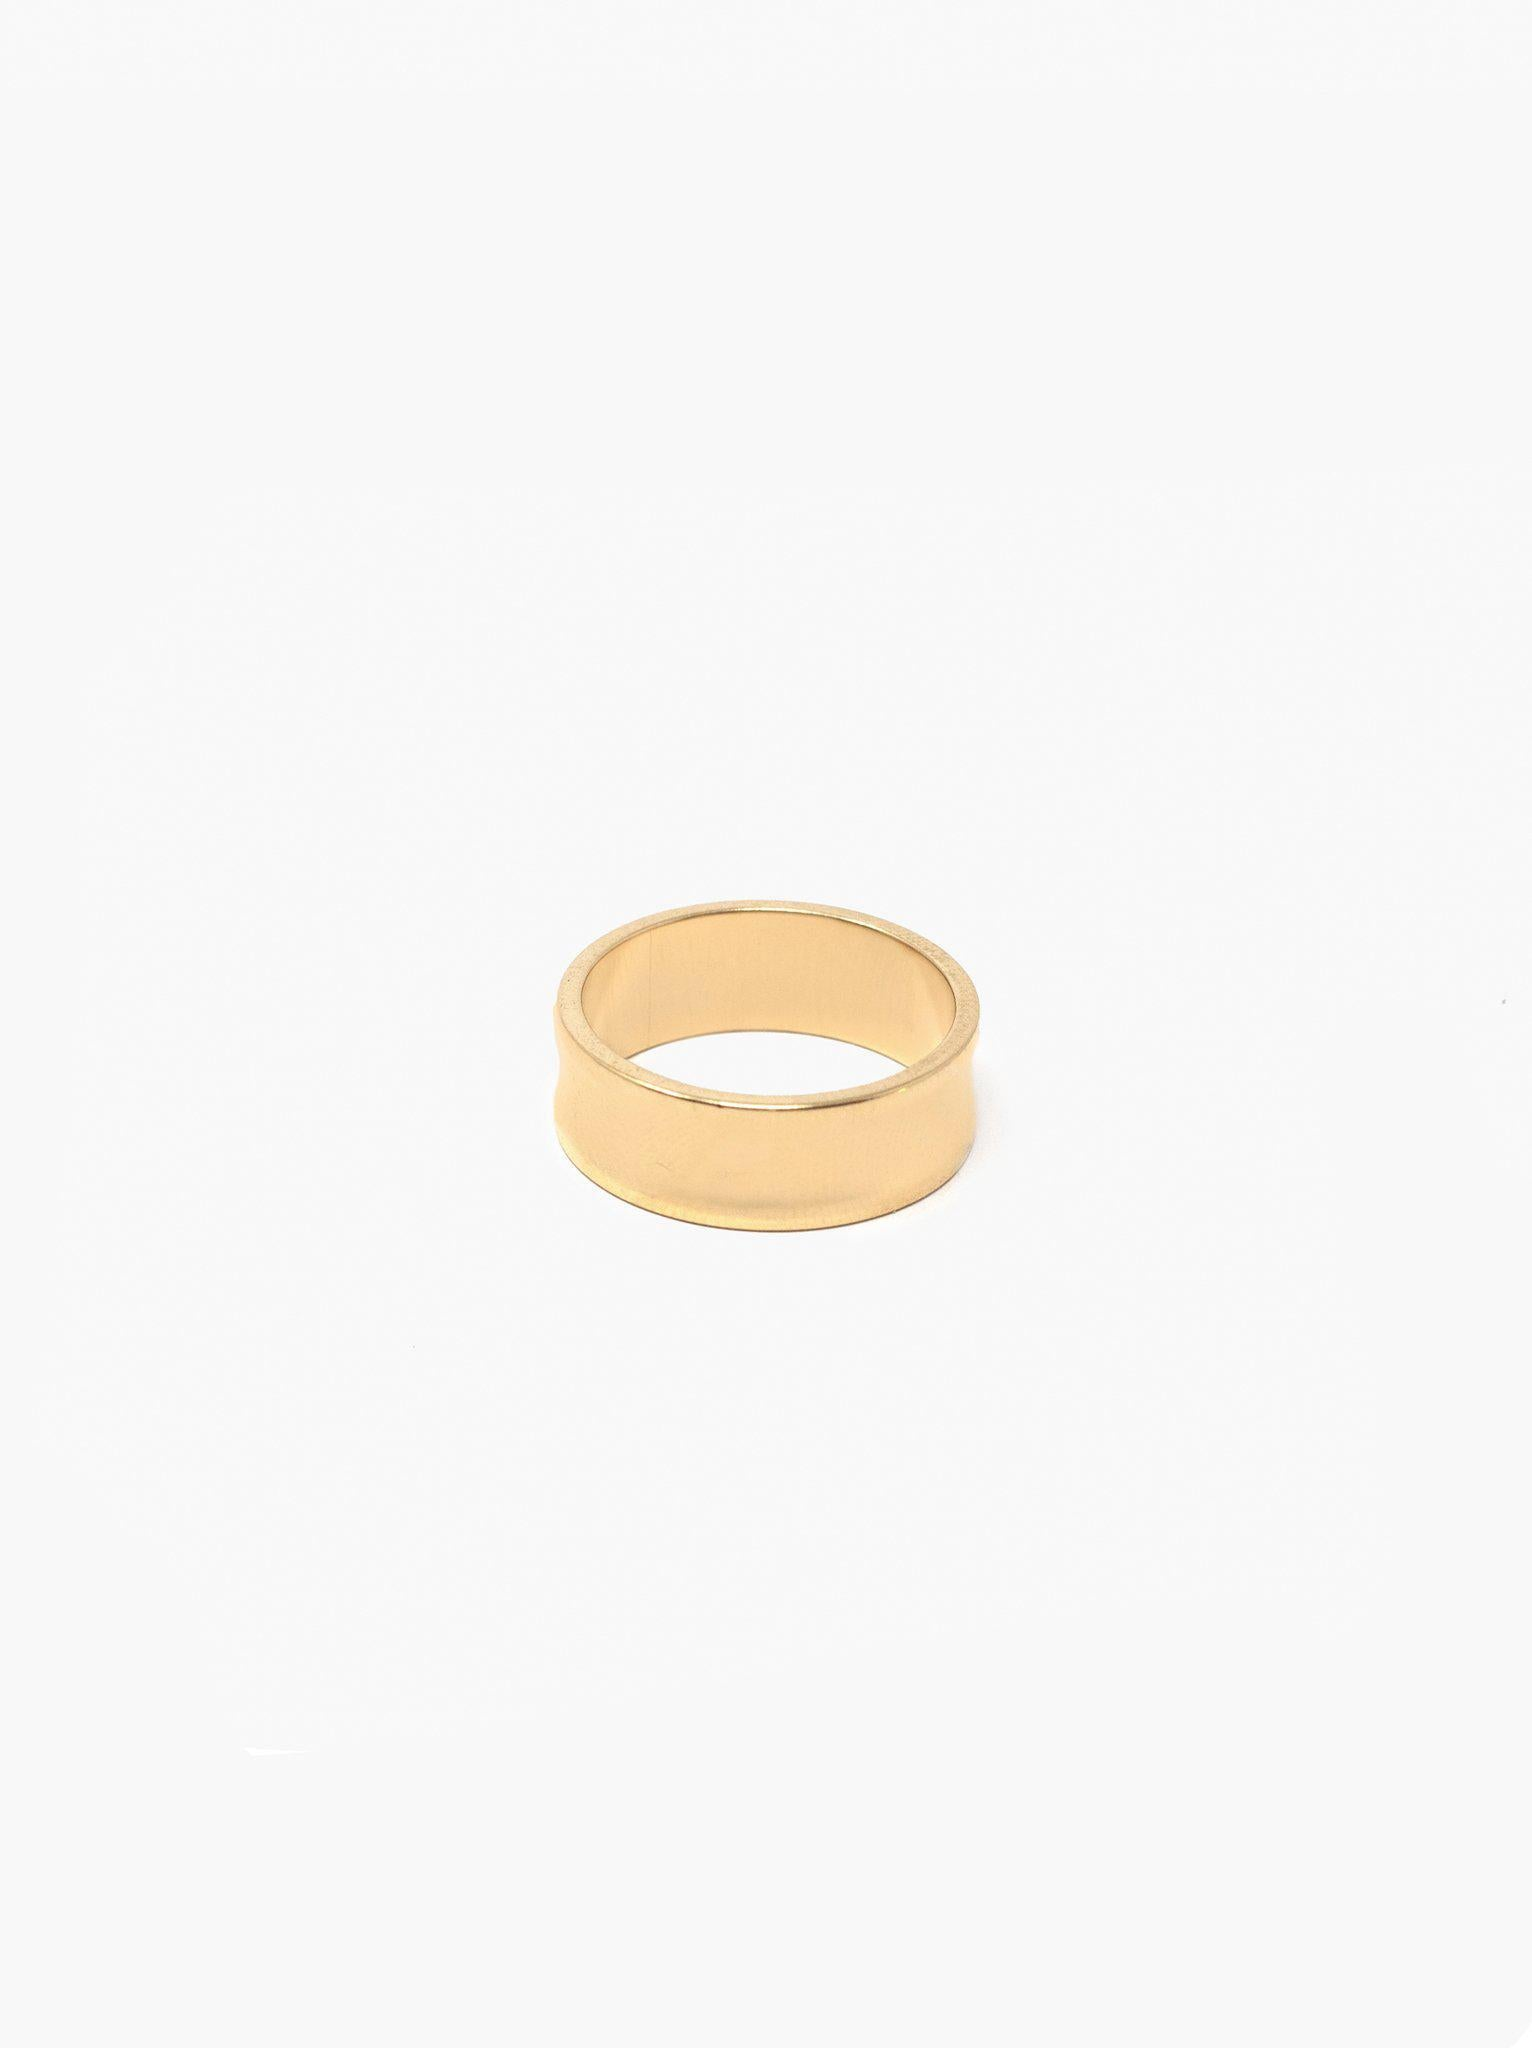 Able Sedona Ring - Gold